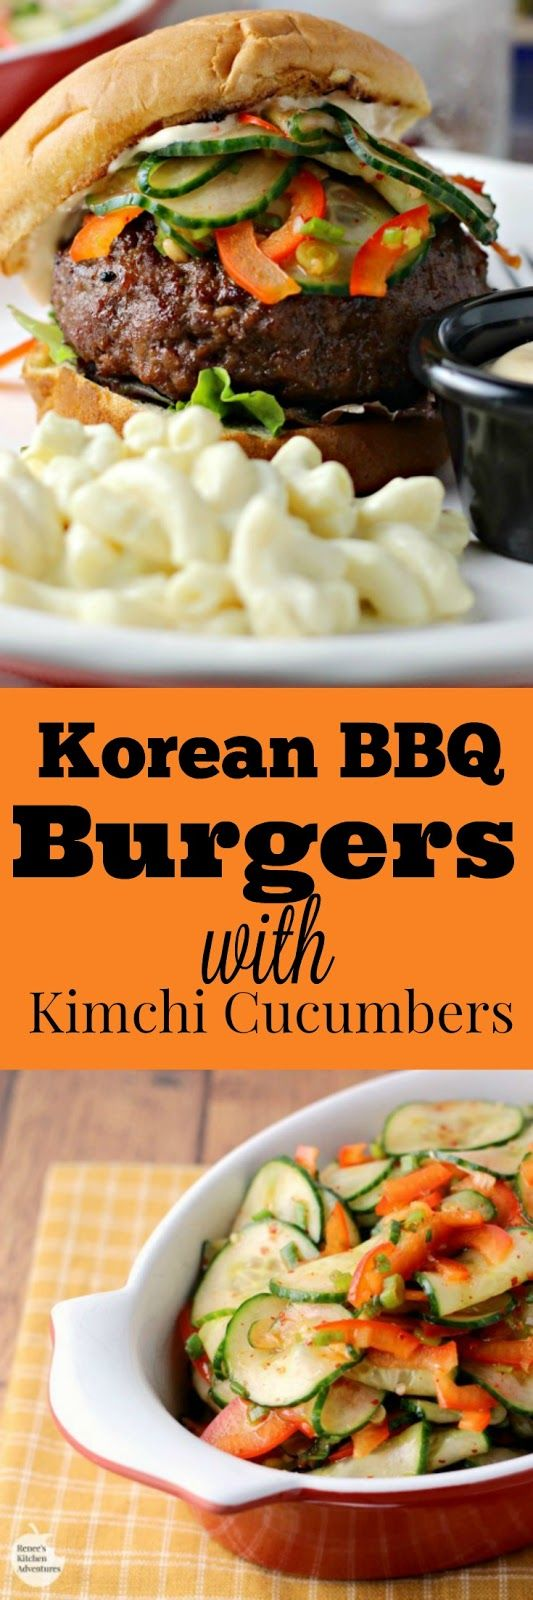 Korean BBQ Burgers with Kimchi Cucumbers | by Renee's Kitchen ...